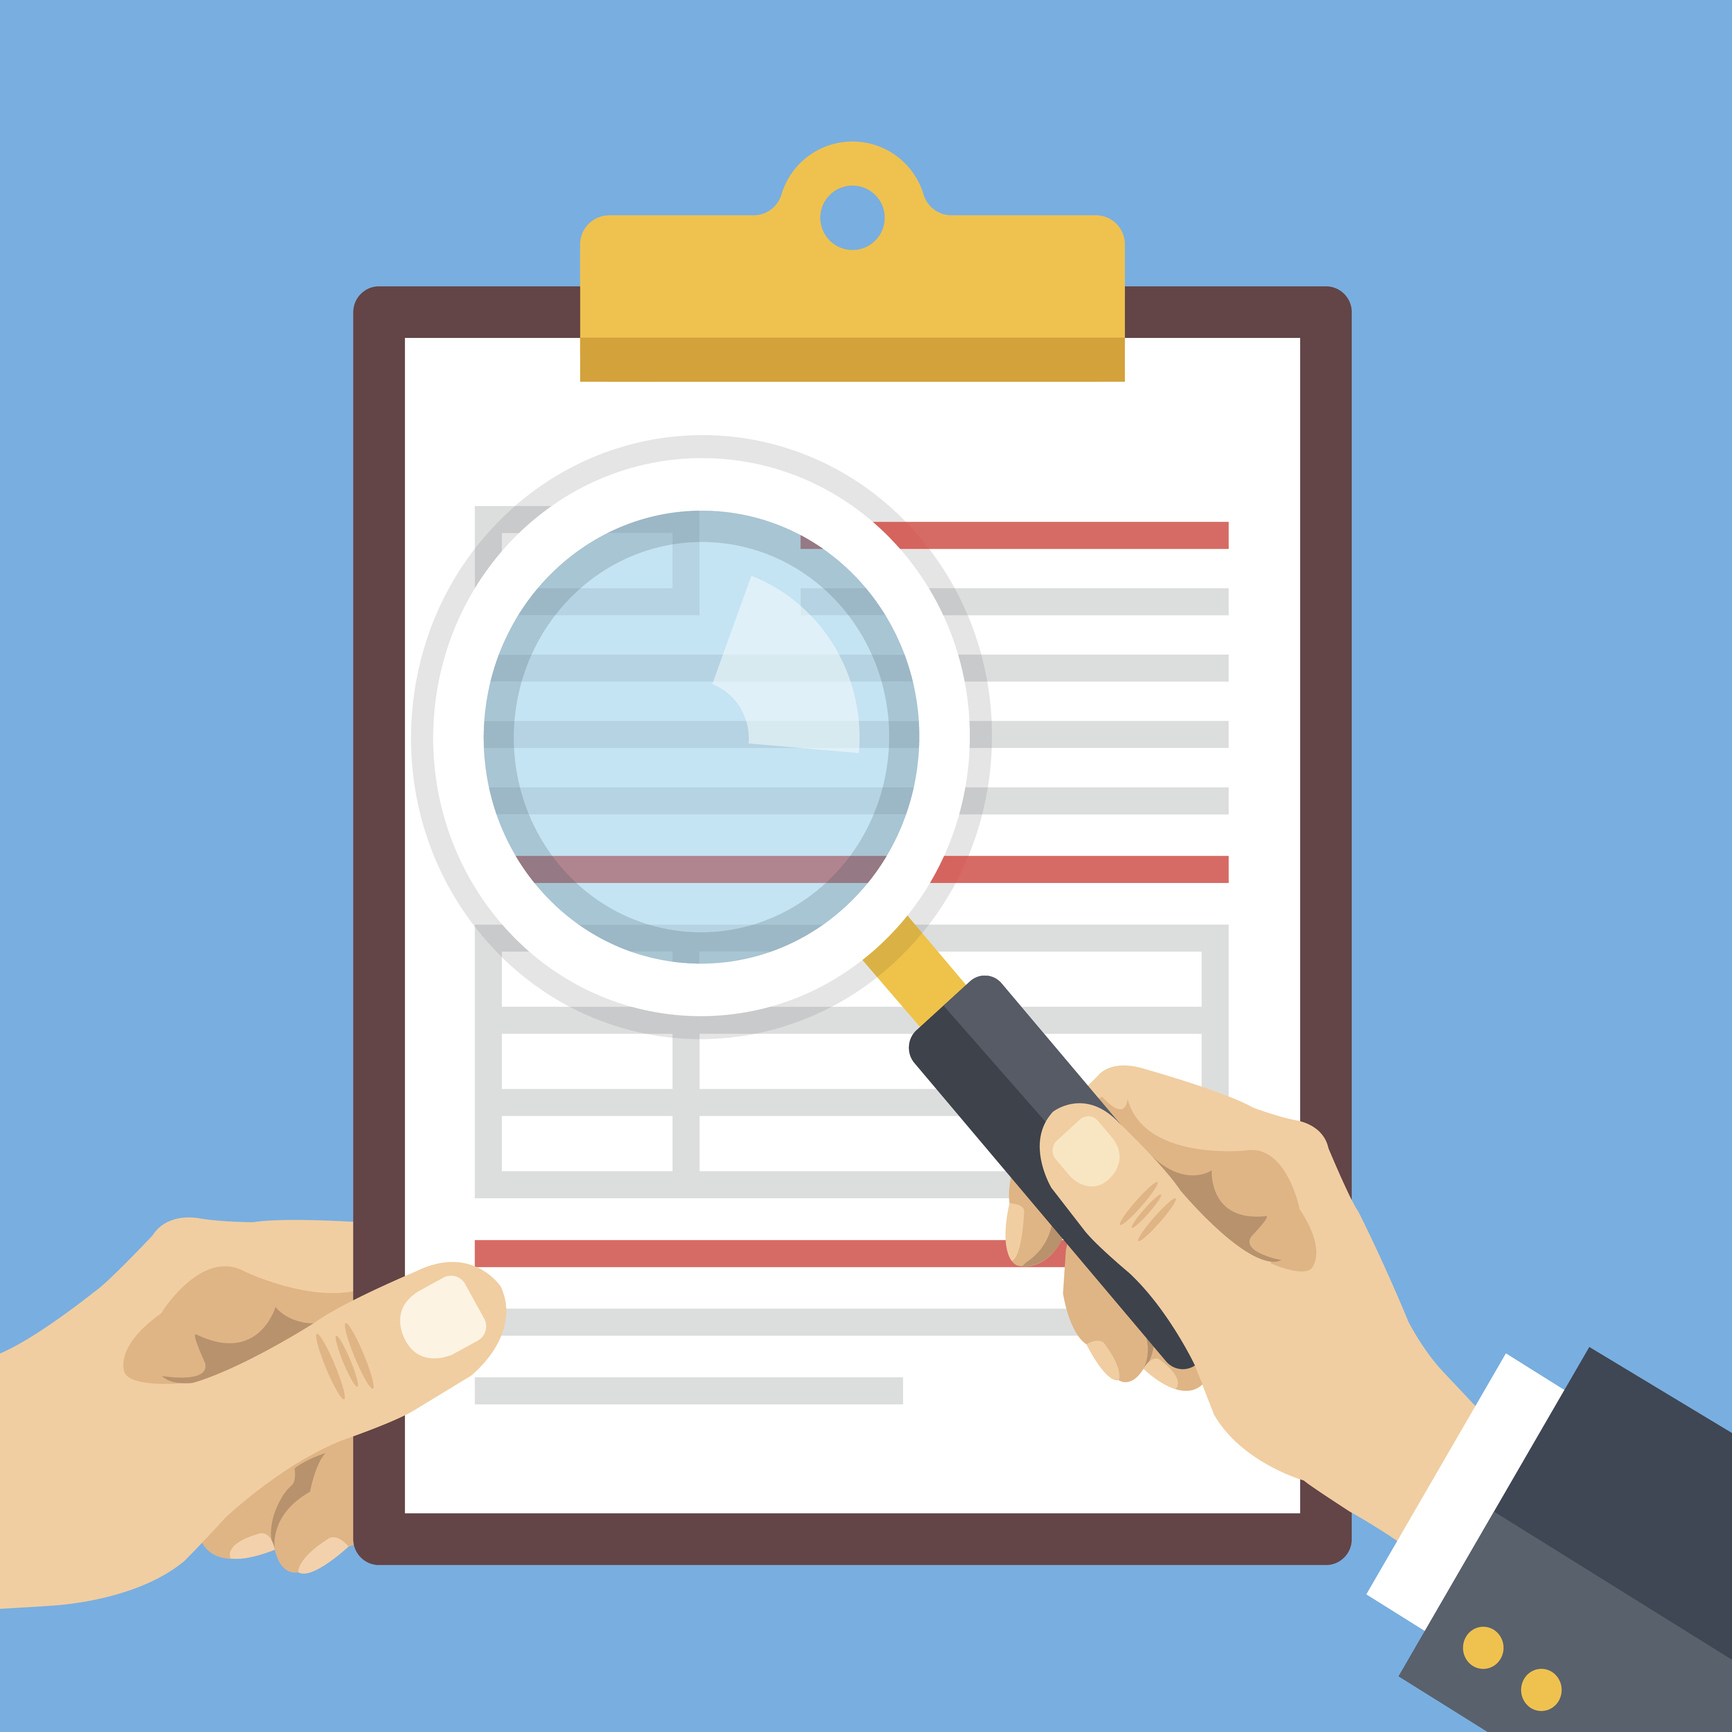 digital documentation using ocr how it works and benefits